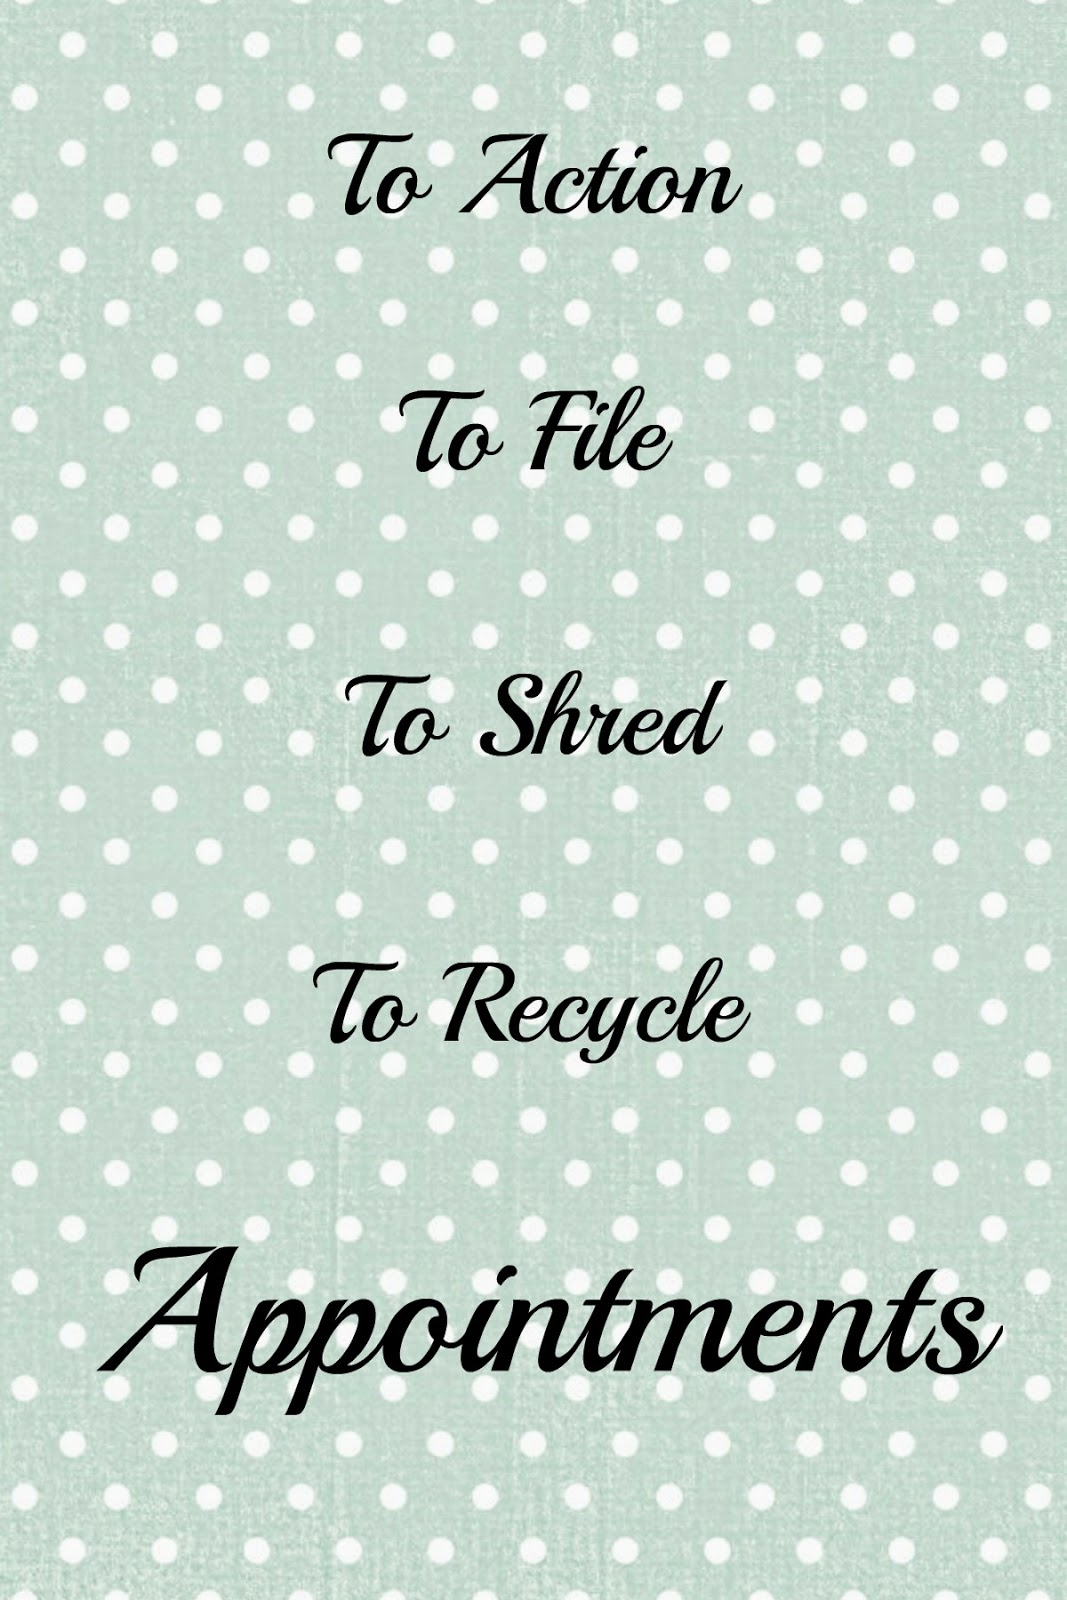 Mail sorting made easy: How to sort into items to action, file, shred and recycle in minutes and printable labels to help...